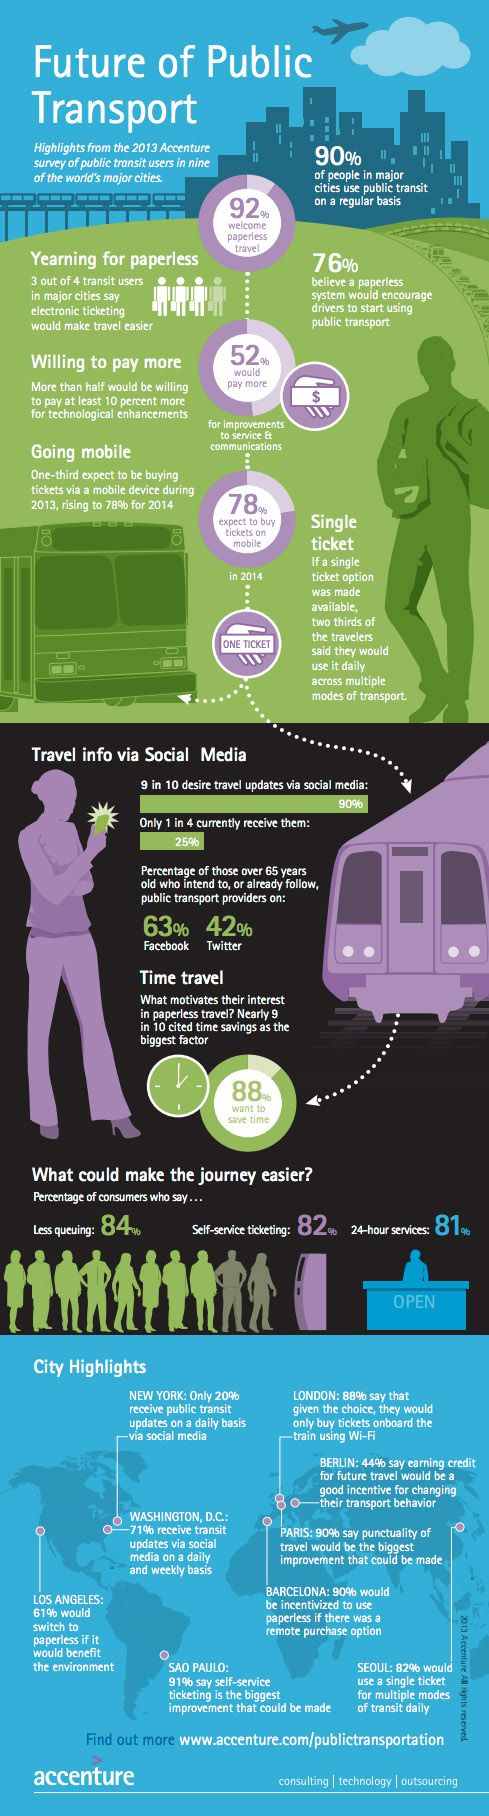 Future of public transport - the impact of mobile ticketing infographic